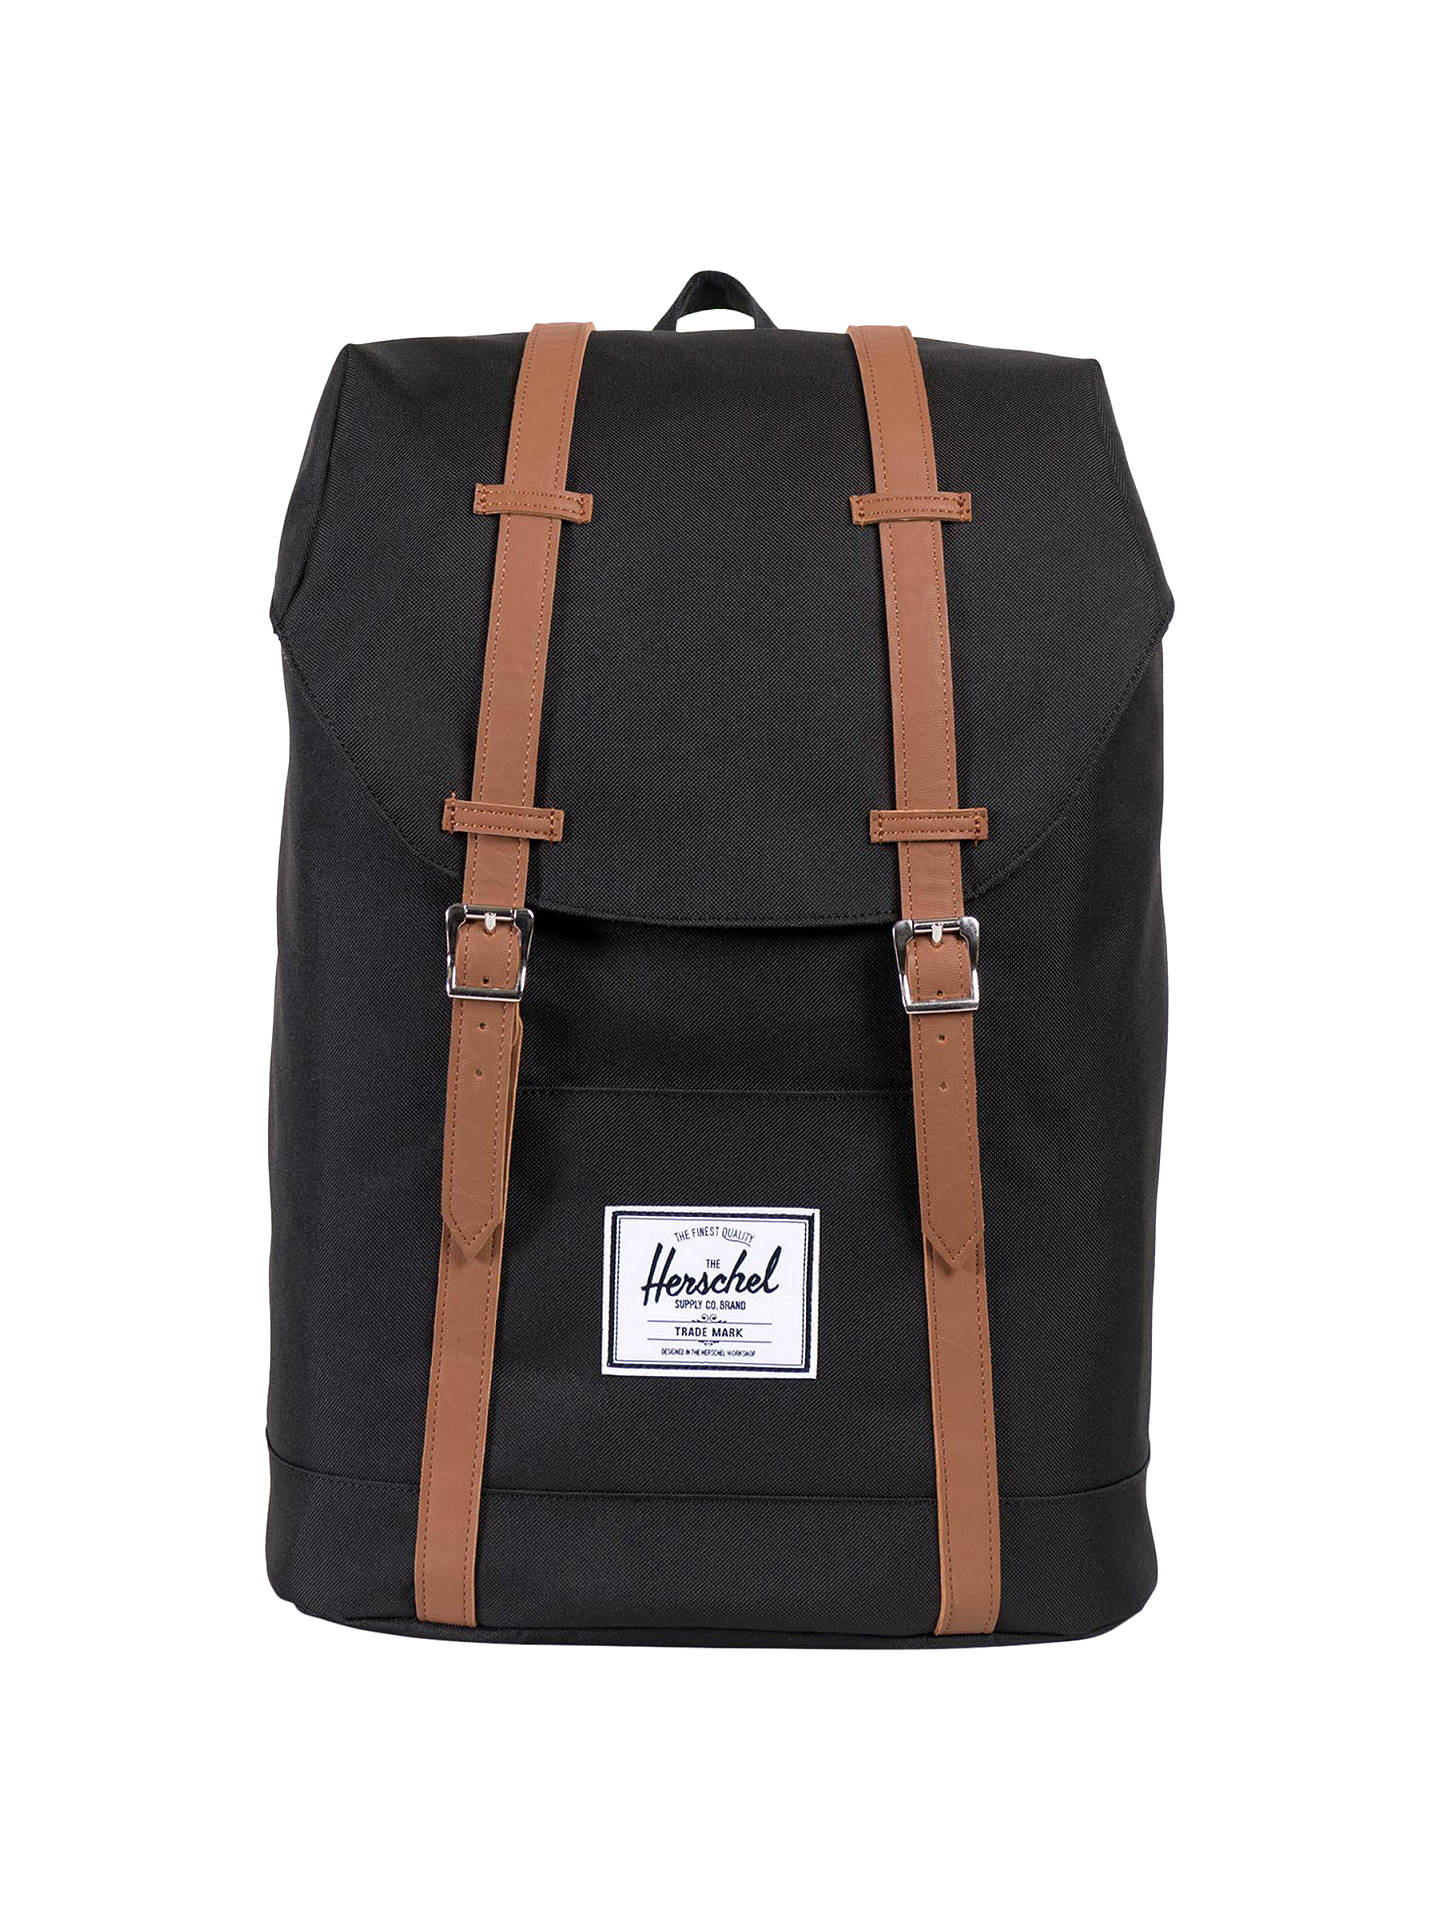 062504e872ec Herschel Supply Co. Retreat Backpack at John Lewis   Partners